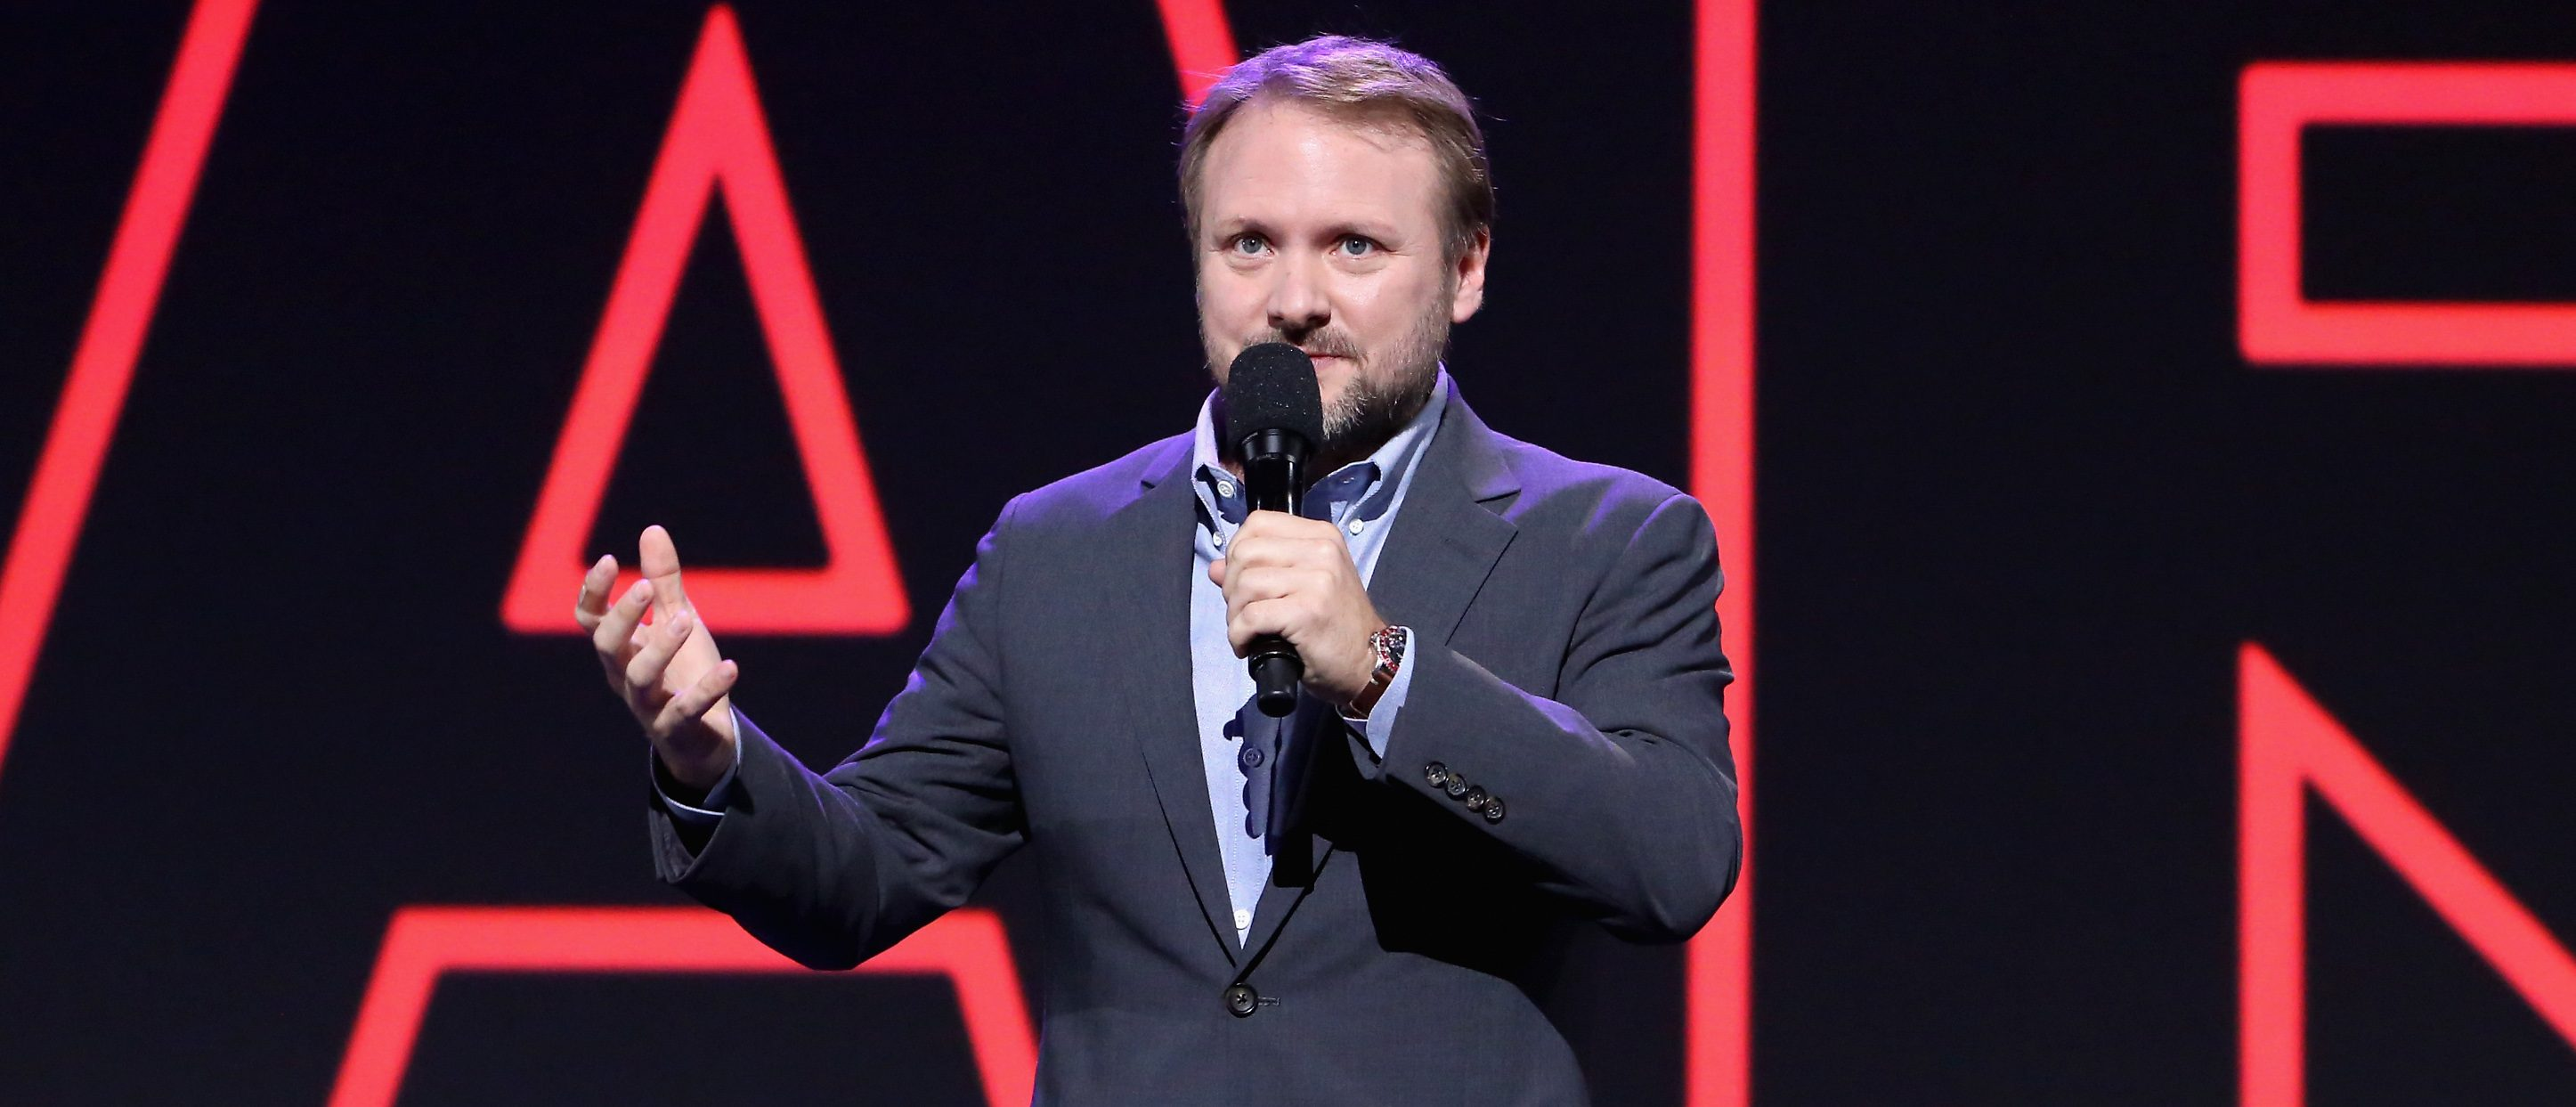 Rian Johnson Opens Up About The New Star Wars Trilogy He's Developing